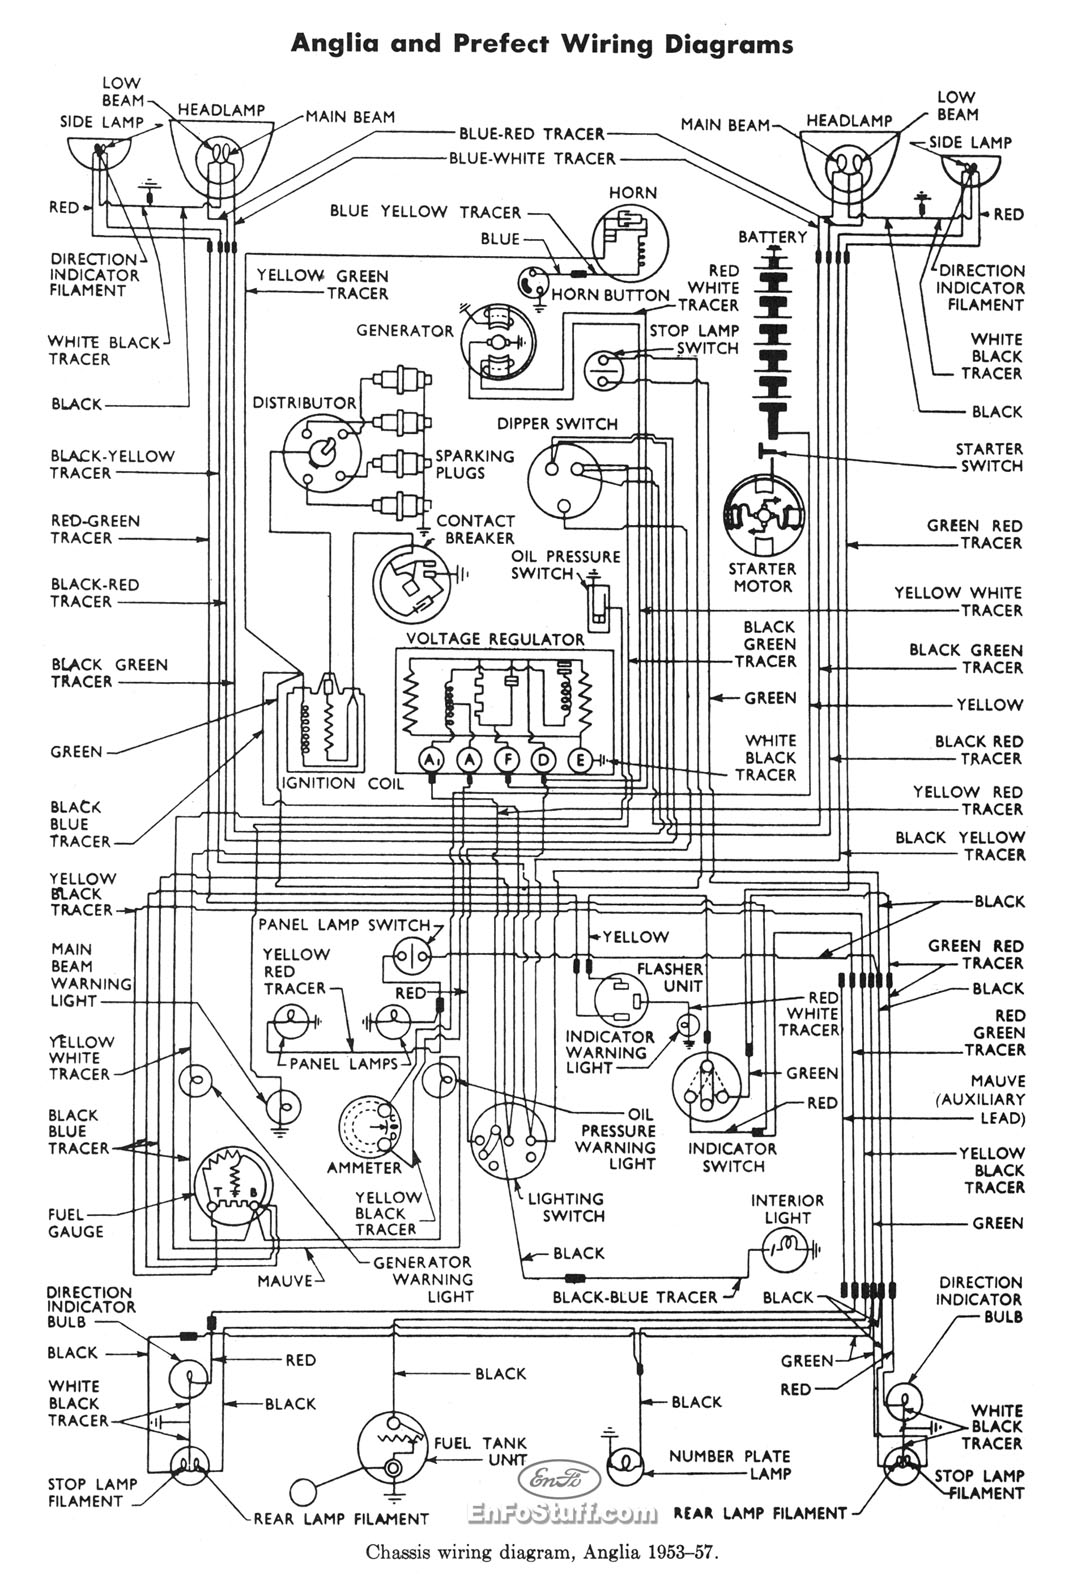 5610 Ford Alternator Wiring Not Lossing Diagram F100 Also Simple Post Rh 29 Asiagourmet Igb De Truck